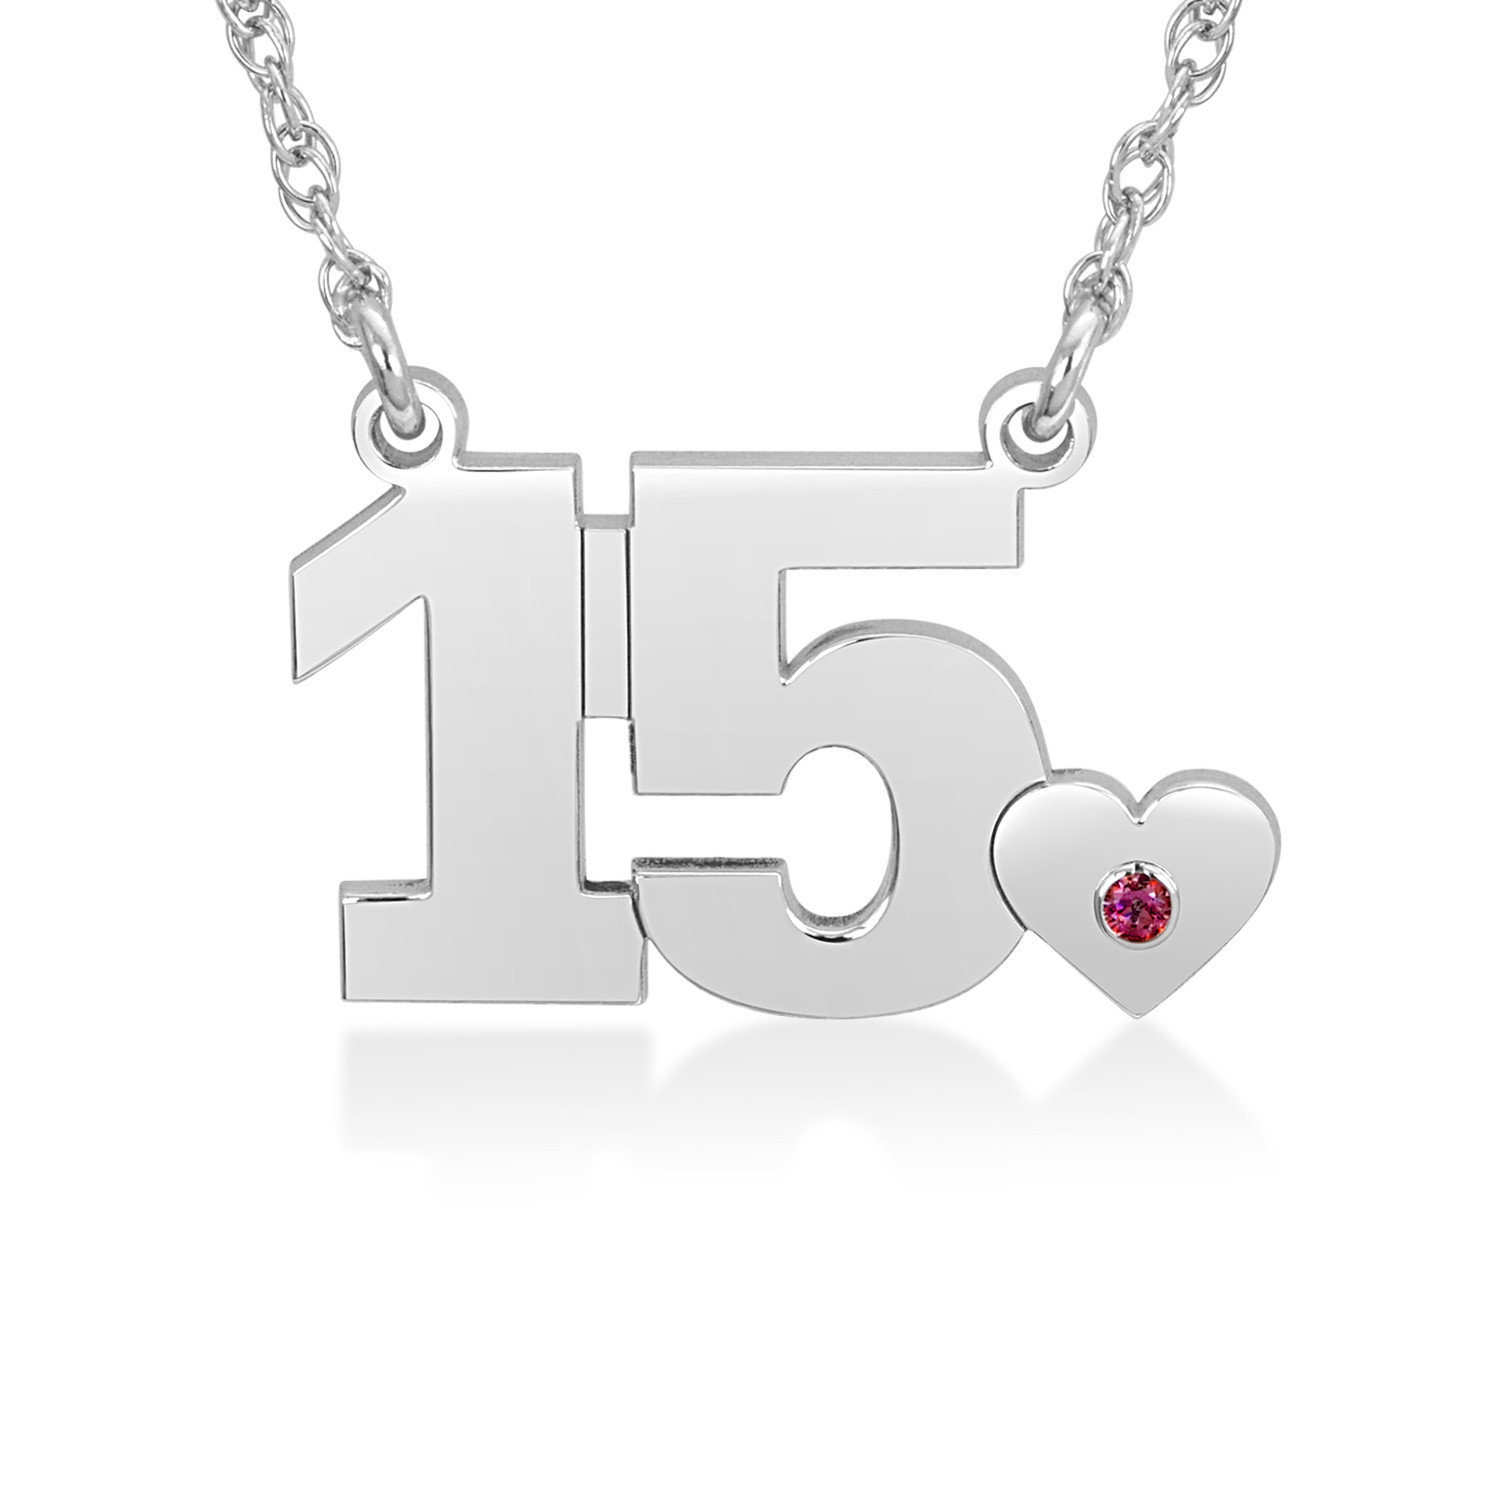 6fe949dc65 Birthstone and Number Necklace (1 Stone and 2 Digits) | Personalized  Necklaces | Create Your Own | Zales